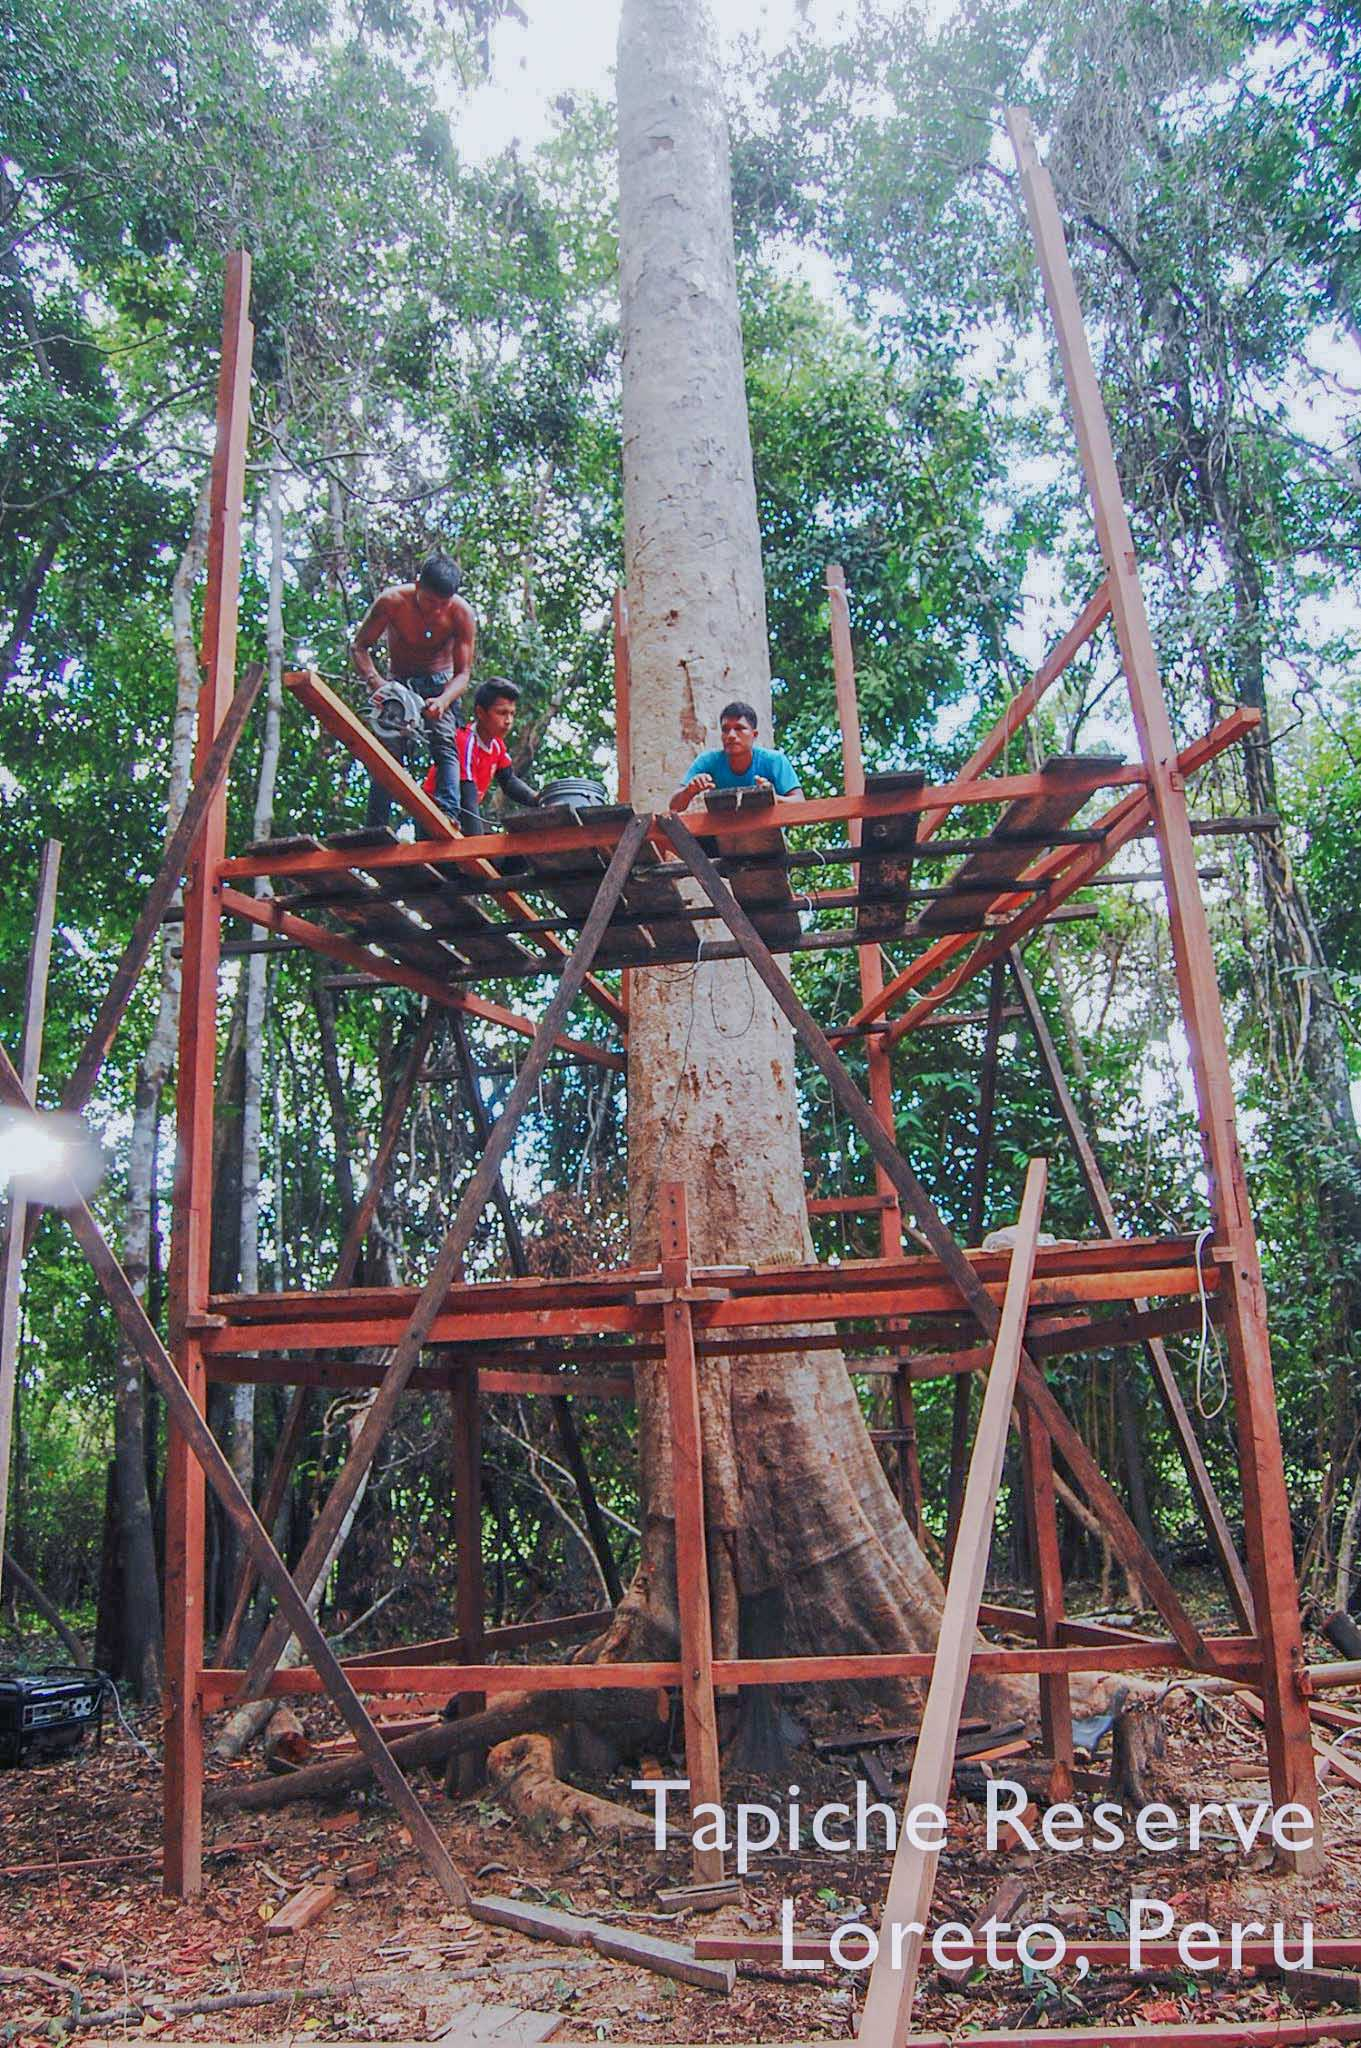 Tapiche-Amazon-Jungle-Tour-Peru-canopy-observation-tower-3.jpg